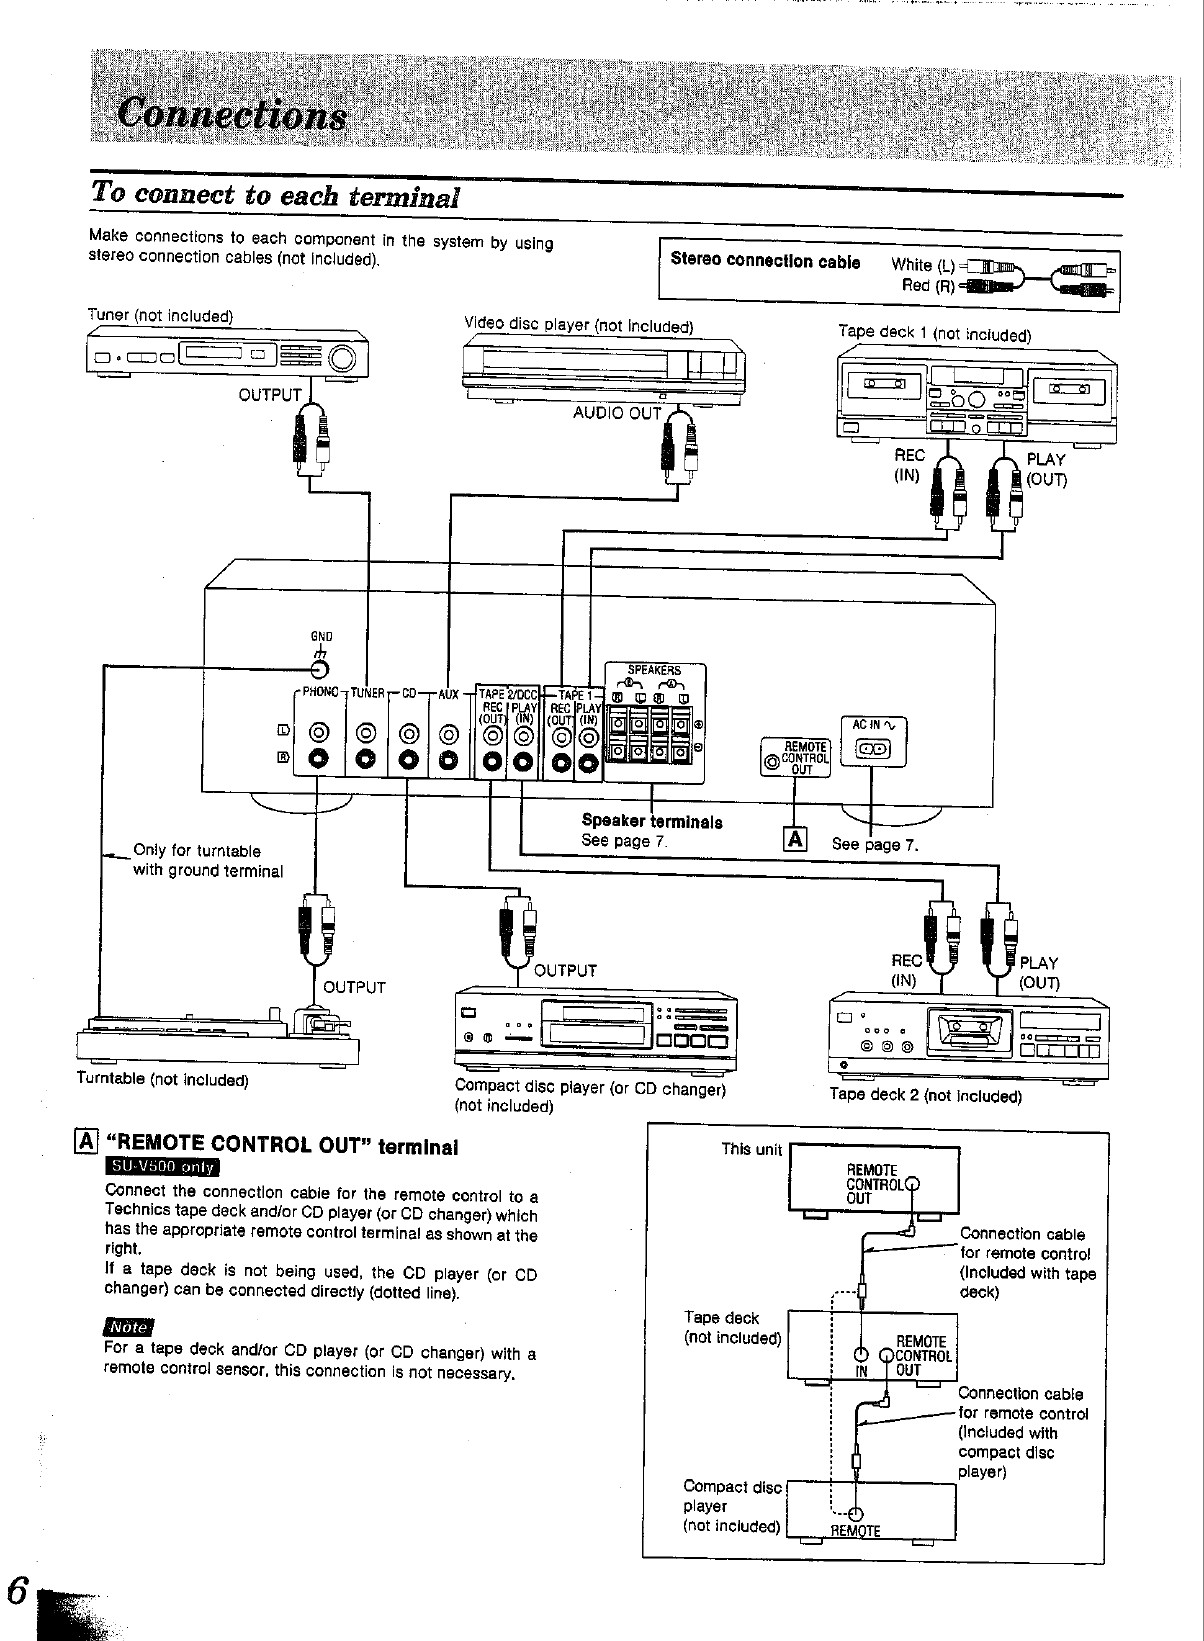 Pyle Hydra Wiring Diagram Page 6 Of Technics Stereo Amplifier Suv 500 User Guide Of Pyle Hydra Wiring Diagram